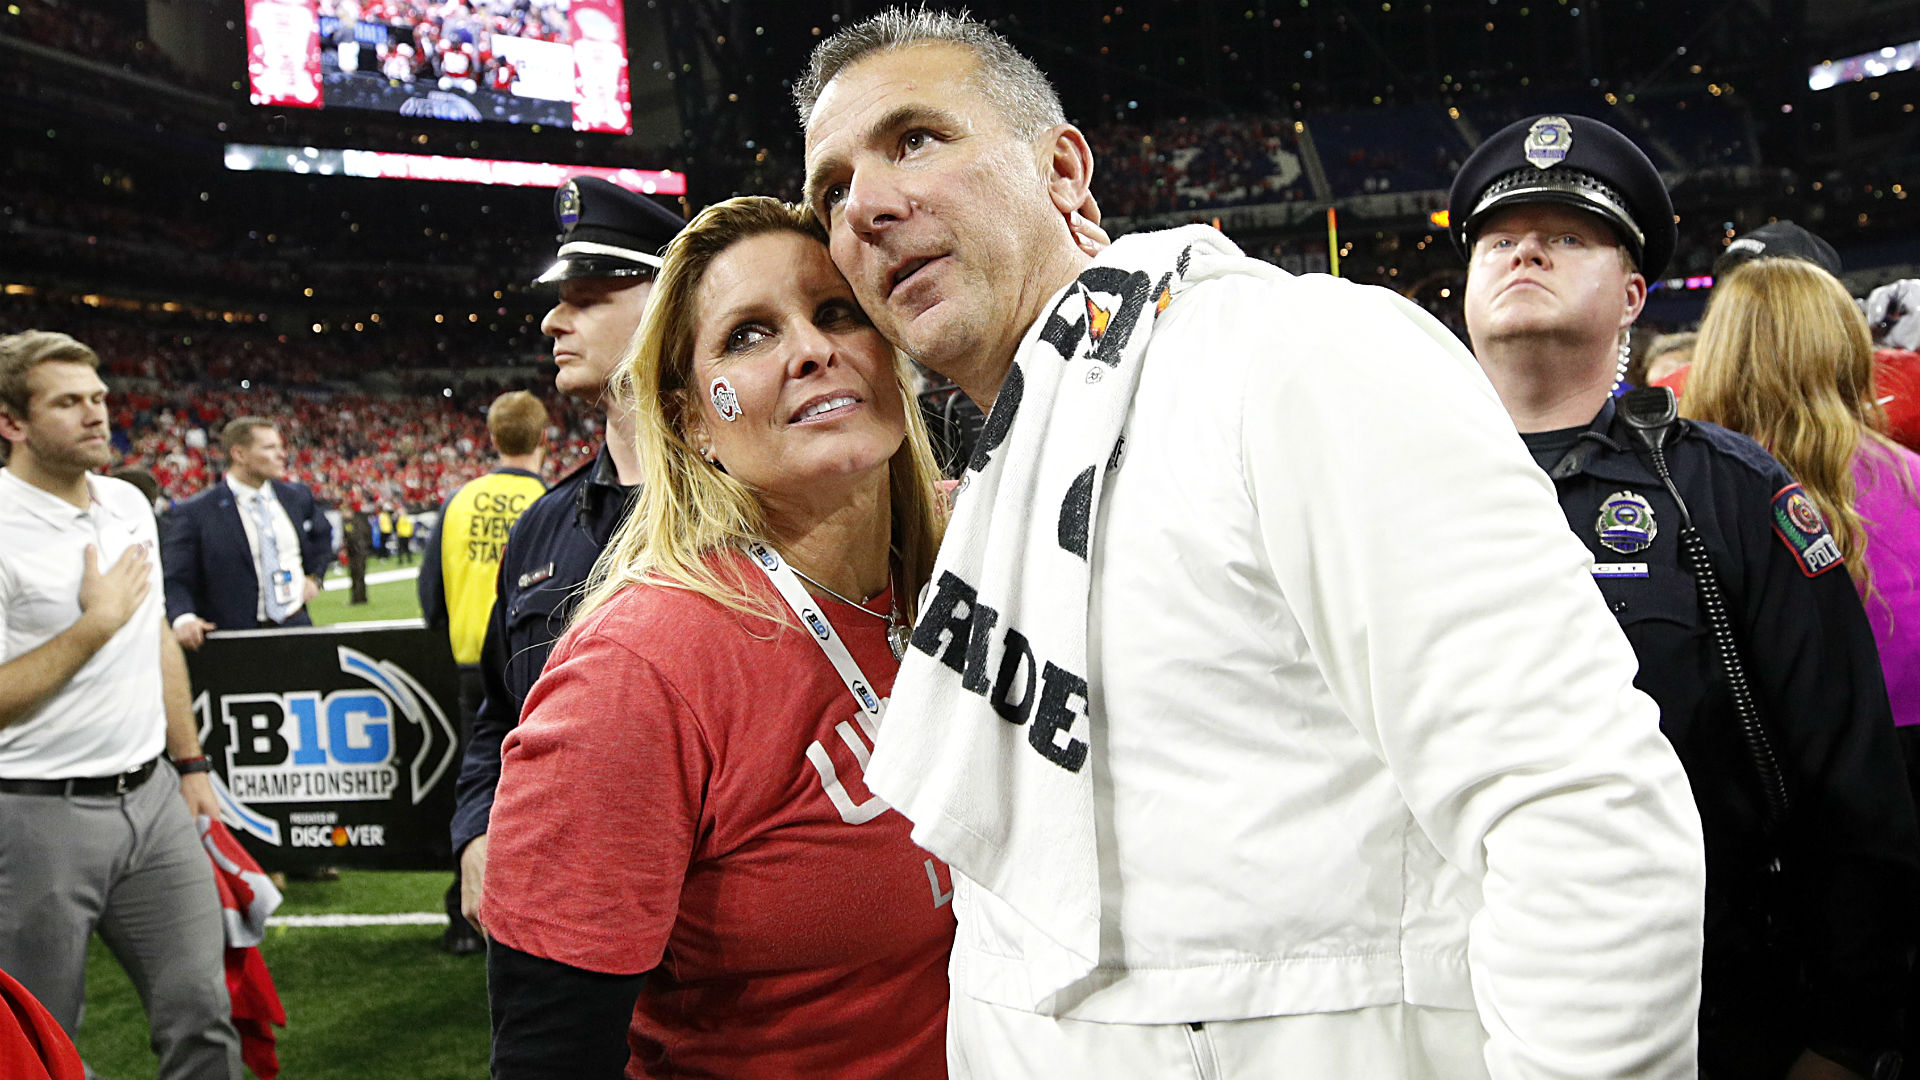 Urban-Shelley-Meyer-120218-Getty-FTR.jpg